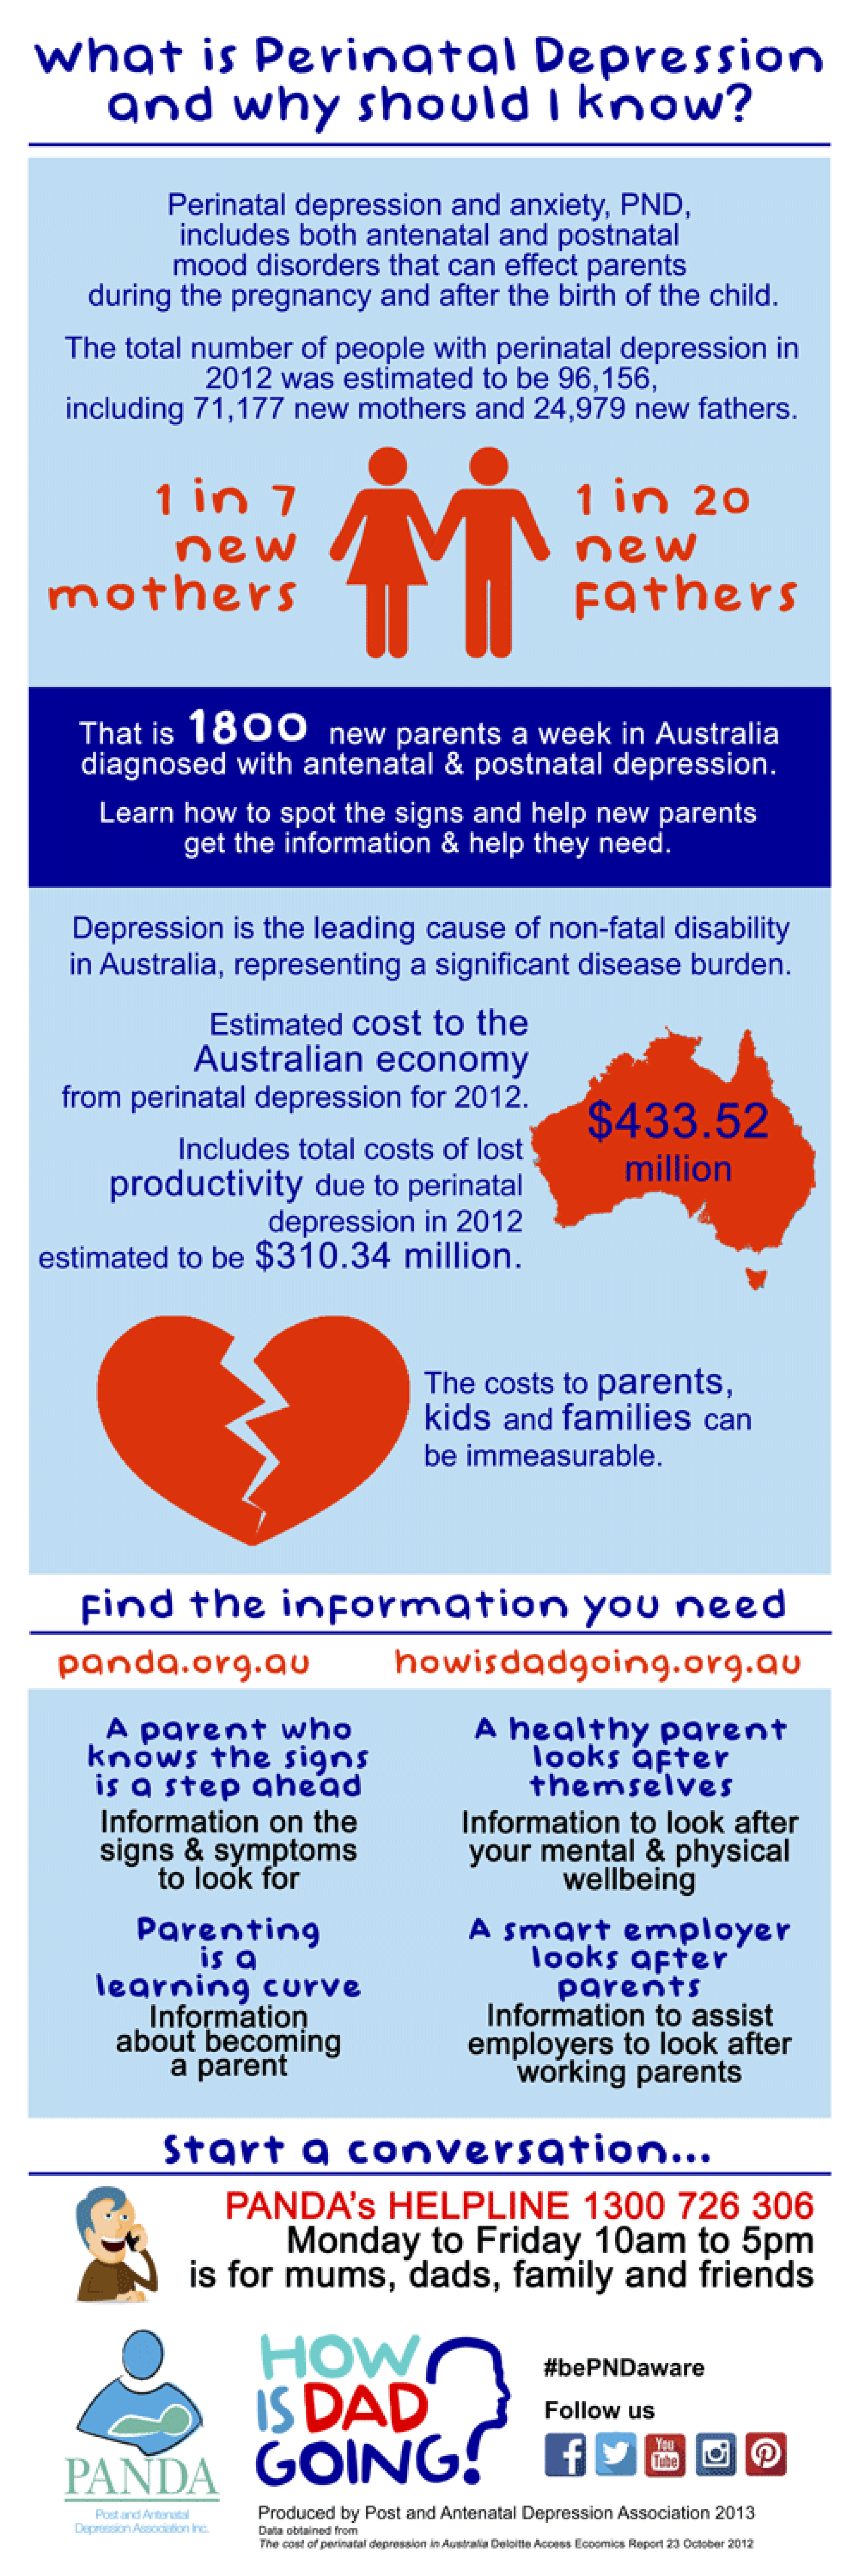 What is perinatal depression? Infographic